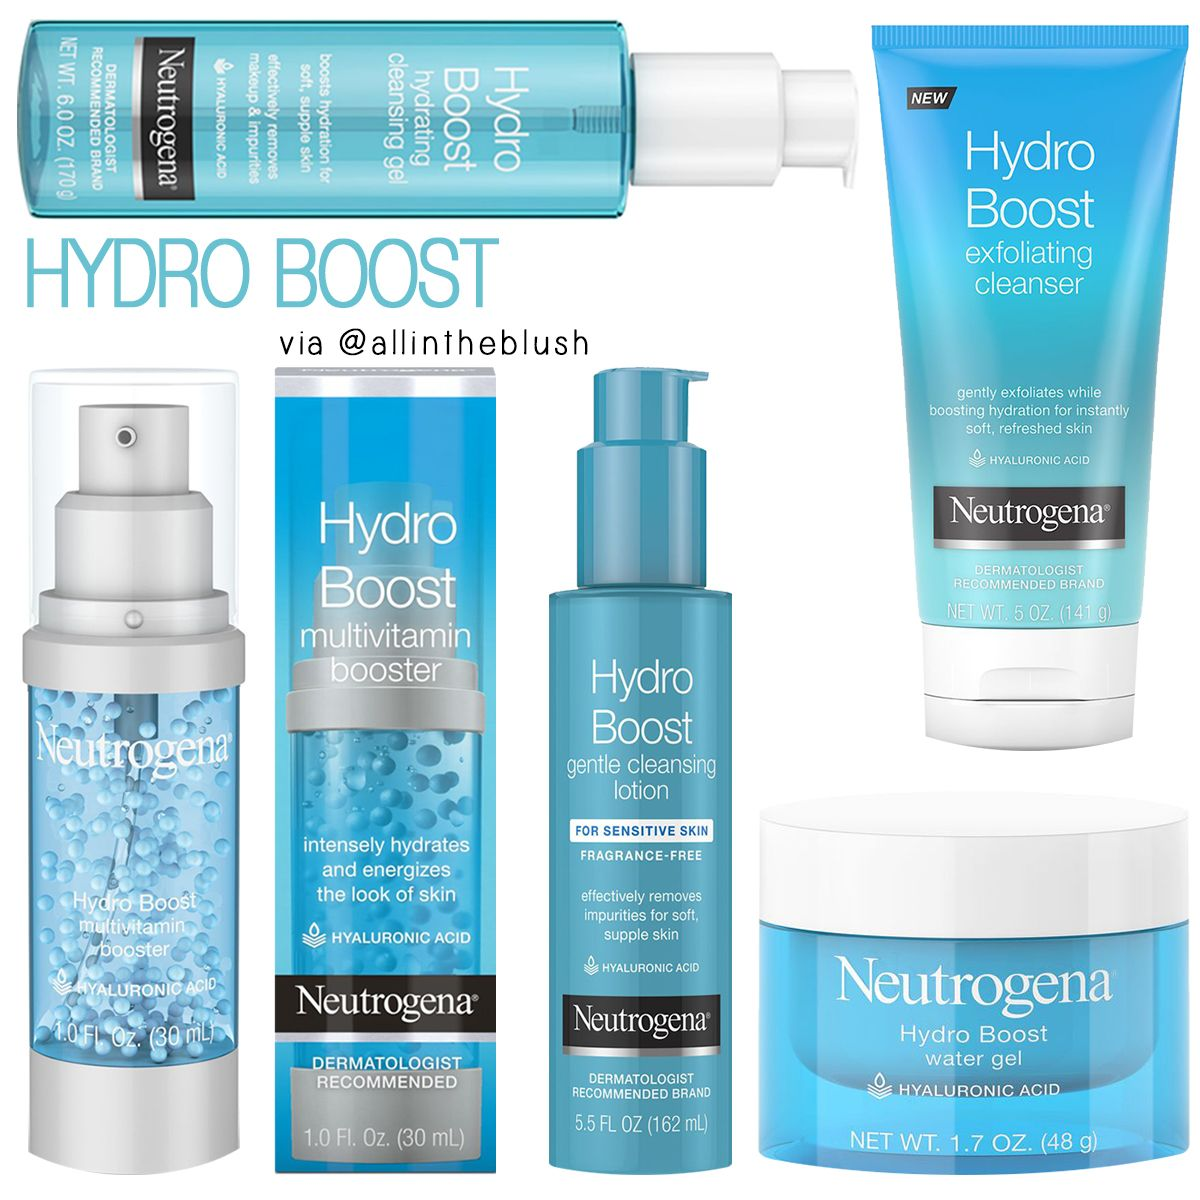 Is your Skin Dehydrated? Neutrogena's NEW Hydro Boost is